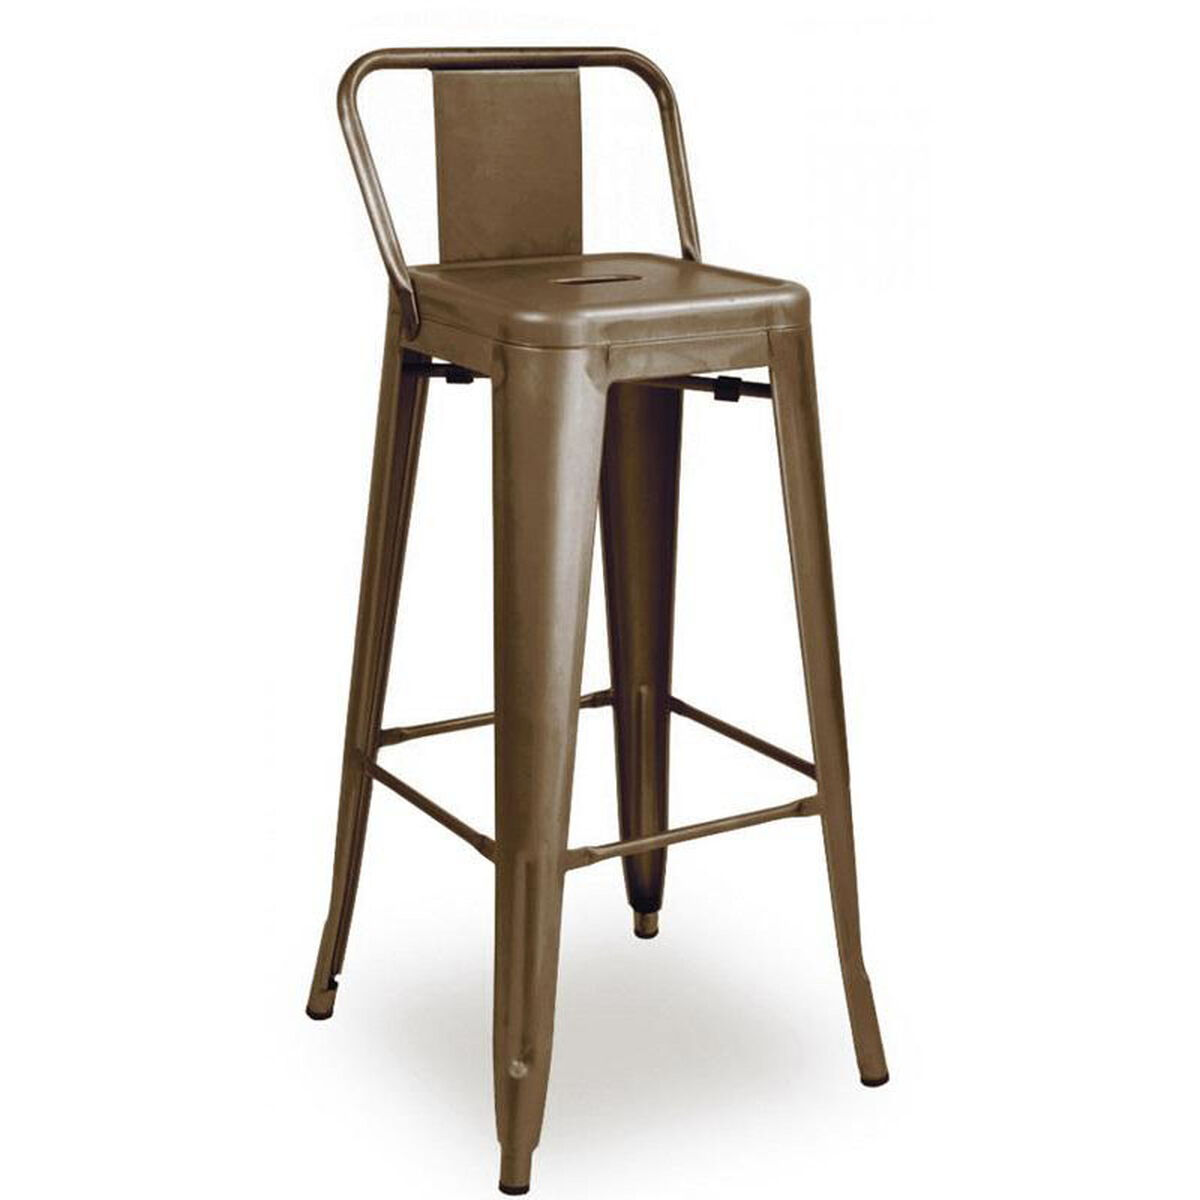 Set Of 4 Dreux Barstools Ls 9100 Rmtlb Schoolfurniture4lesscom